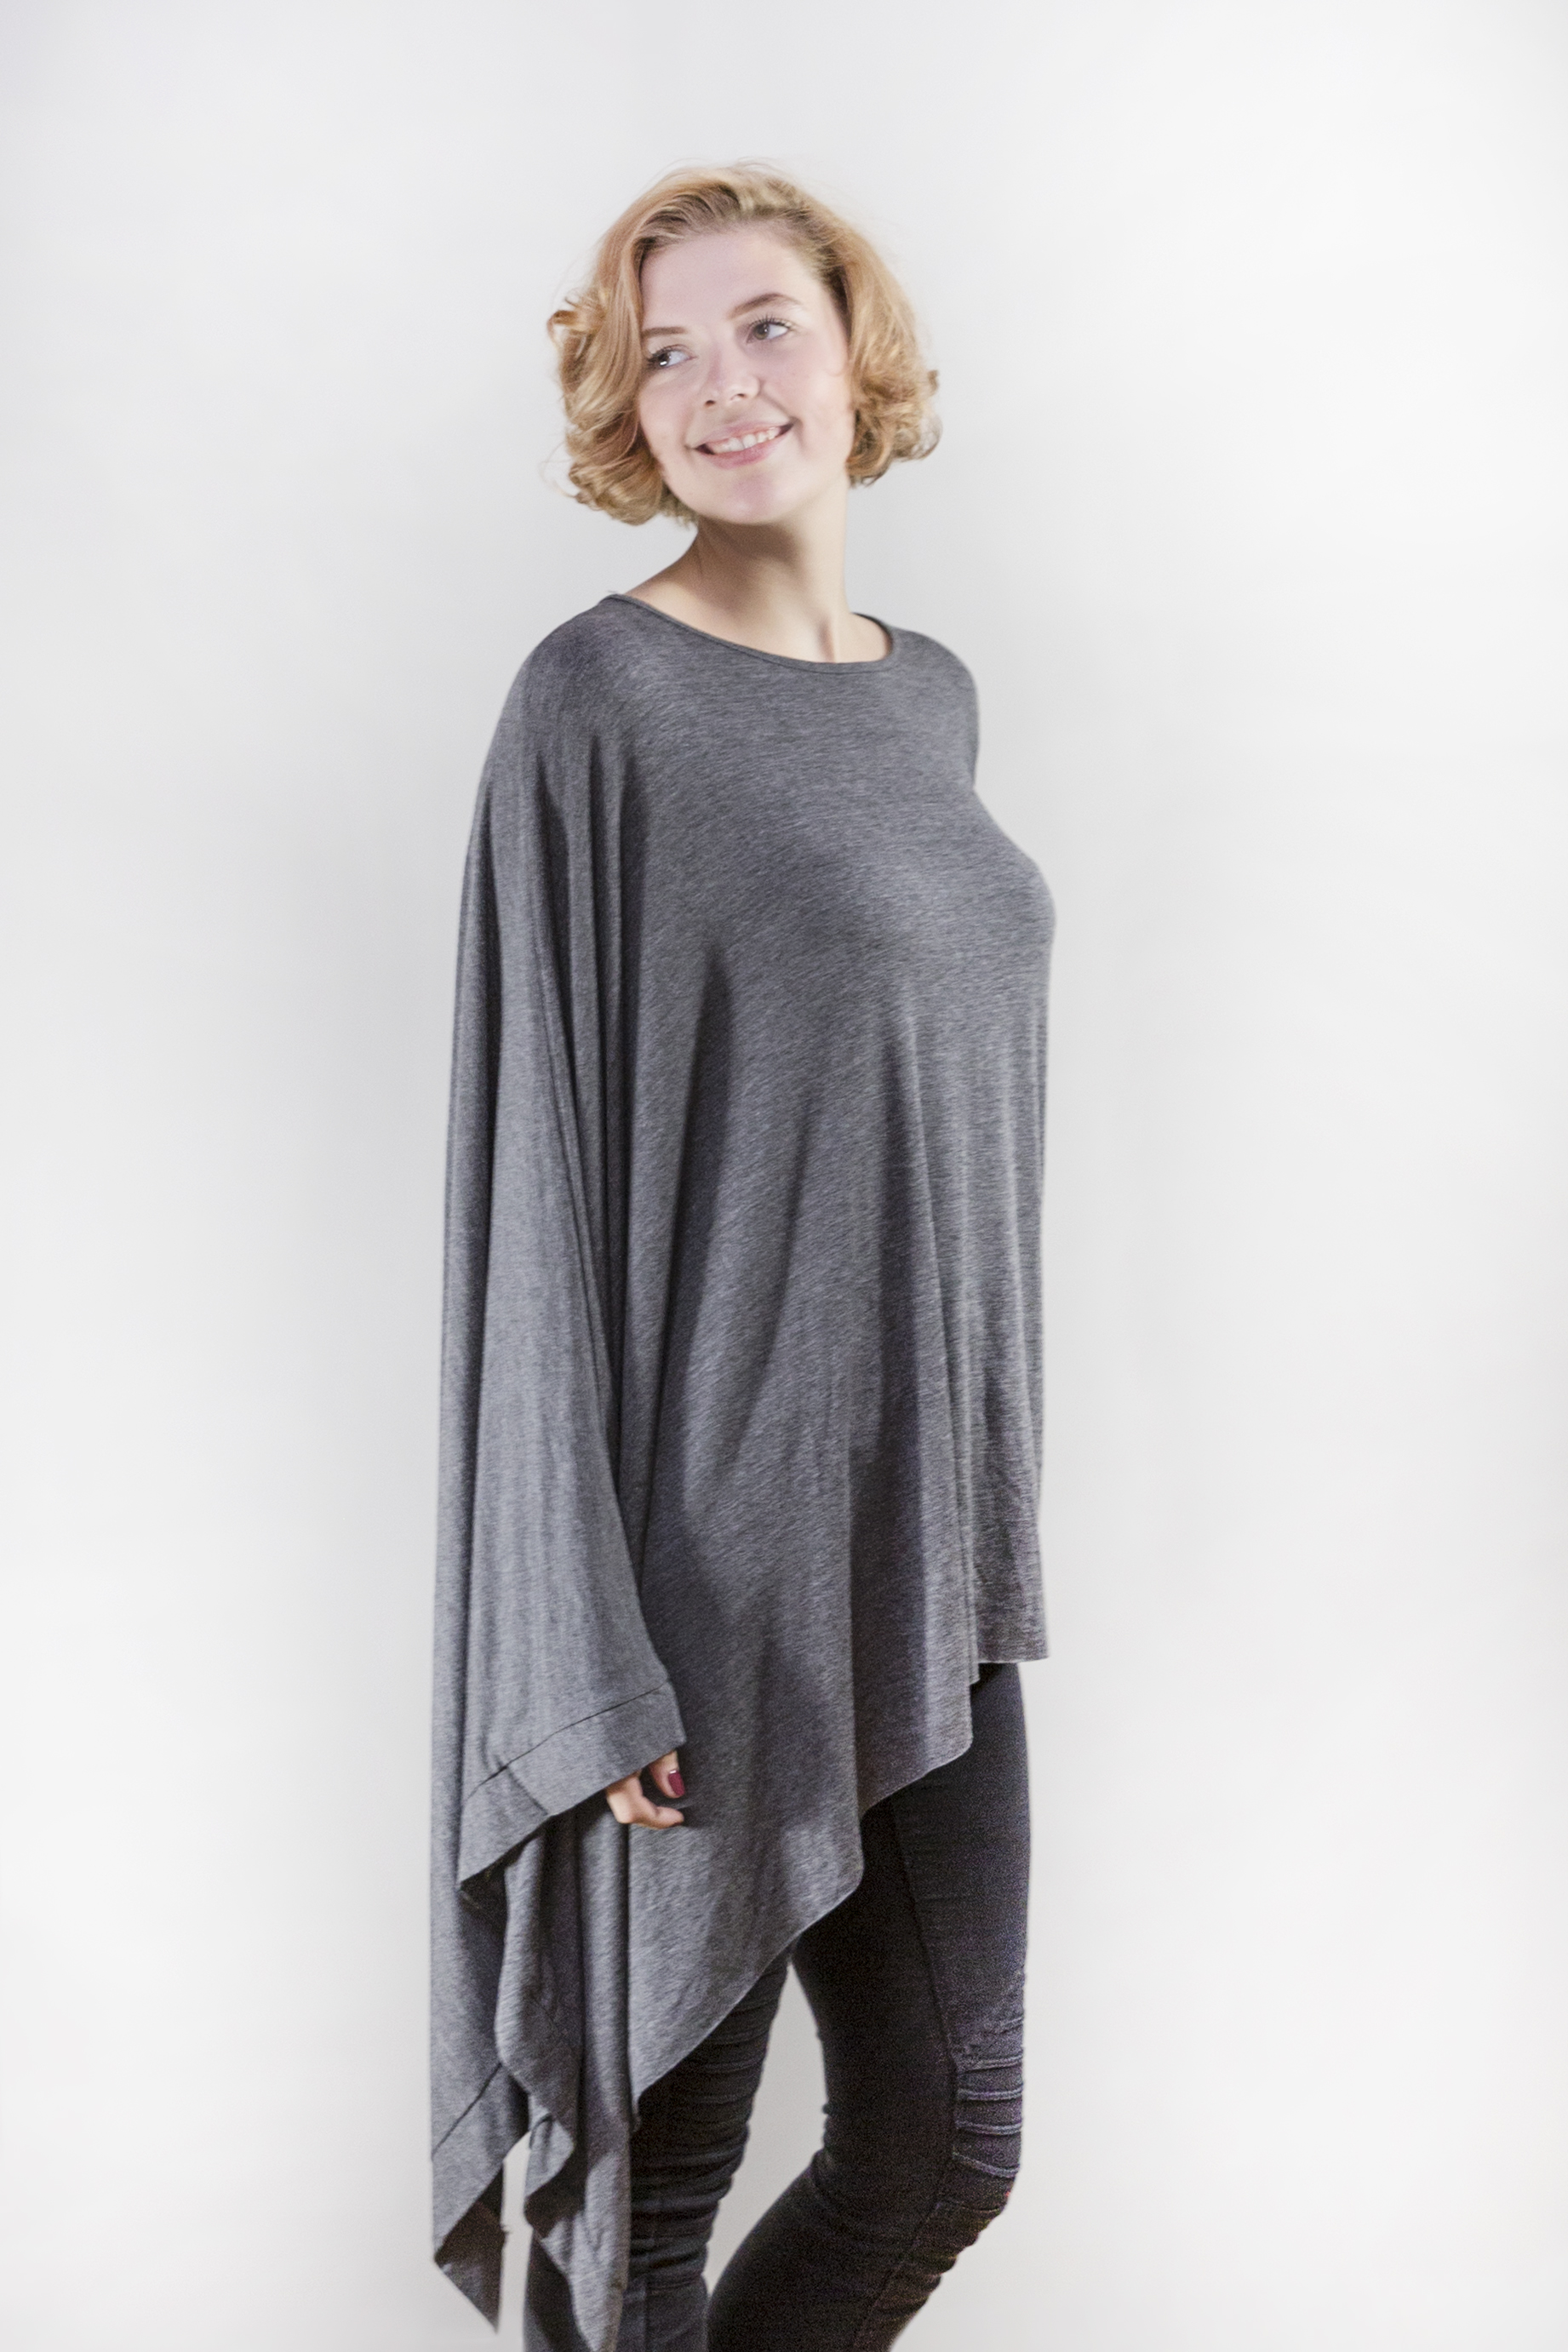 Suzy D Sleeved Poncho Top